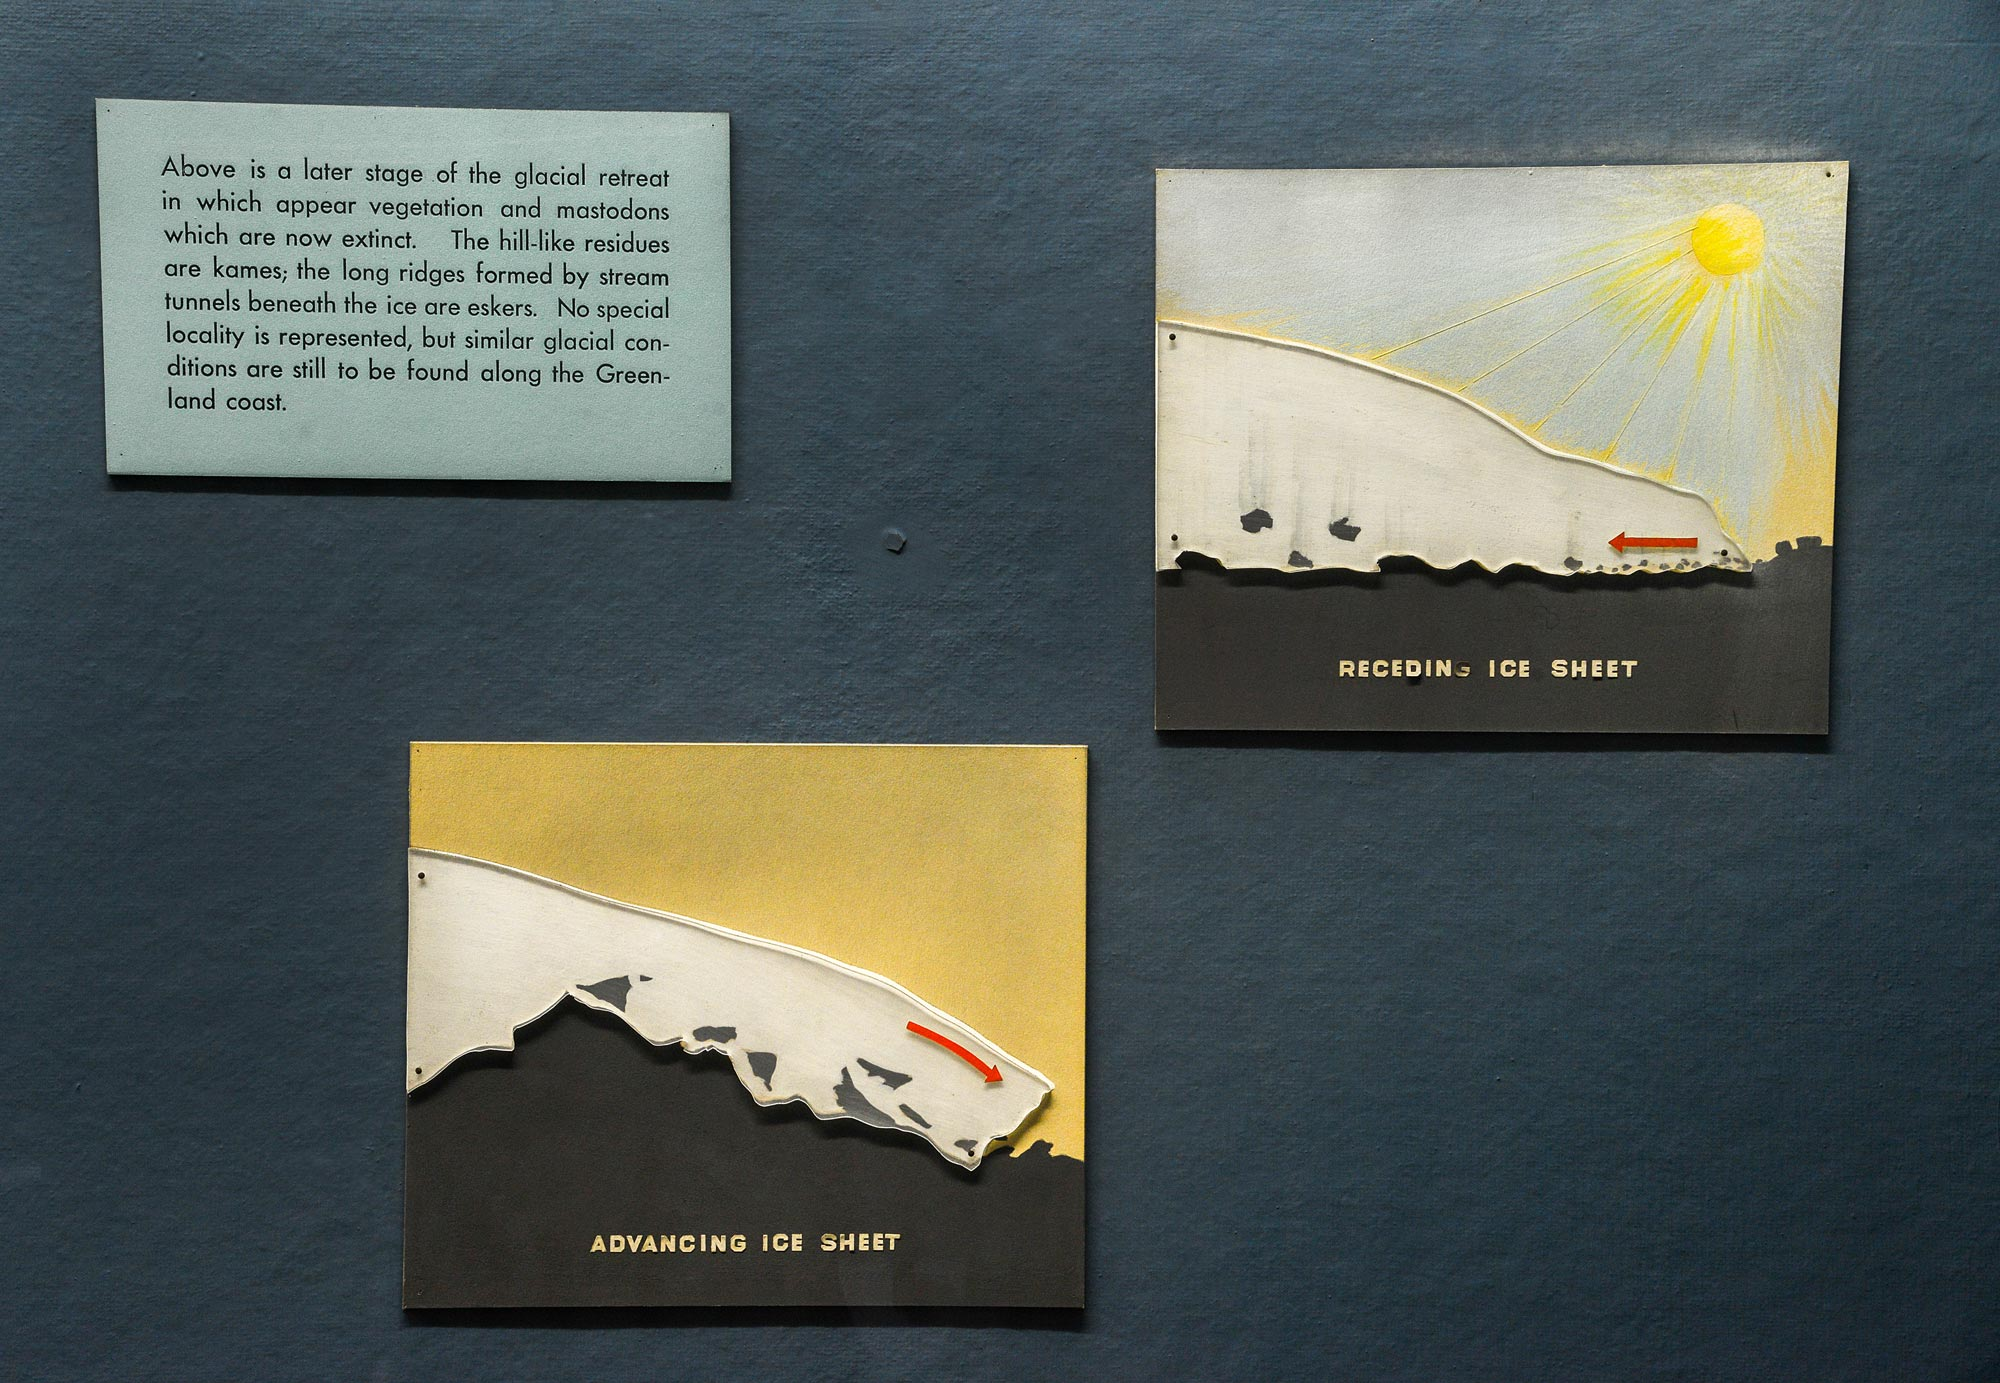 Section of a museum case showing text and illustrations about the receding ice sheet.